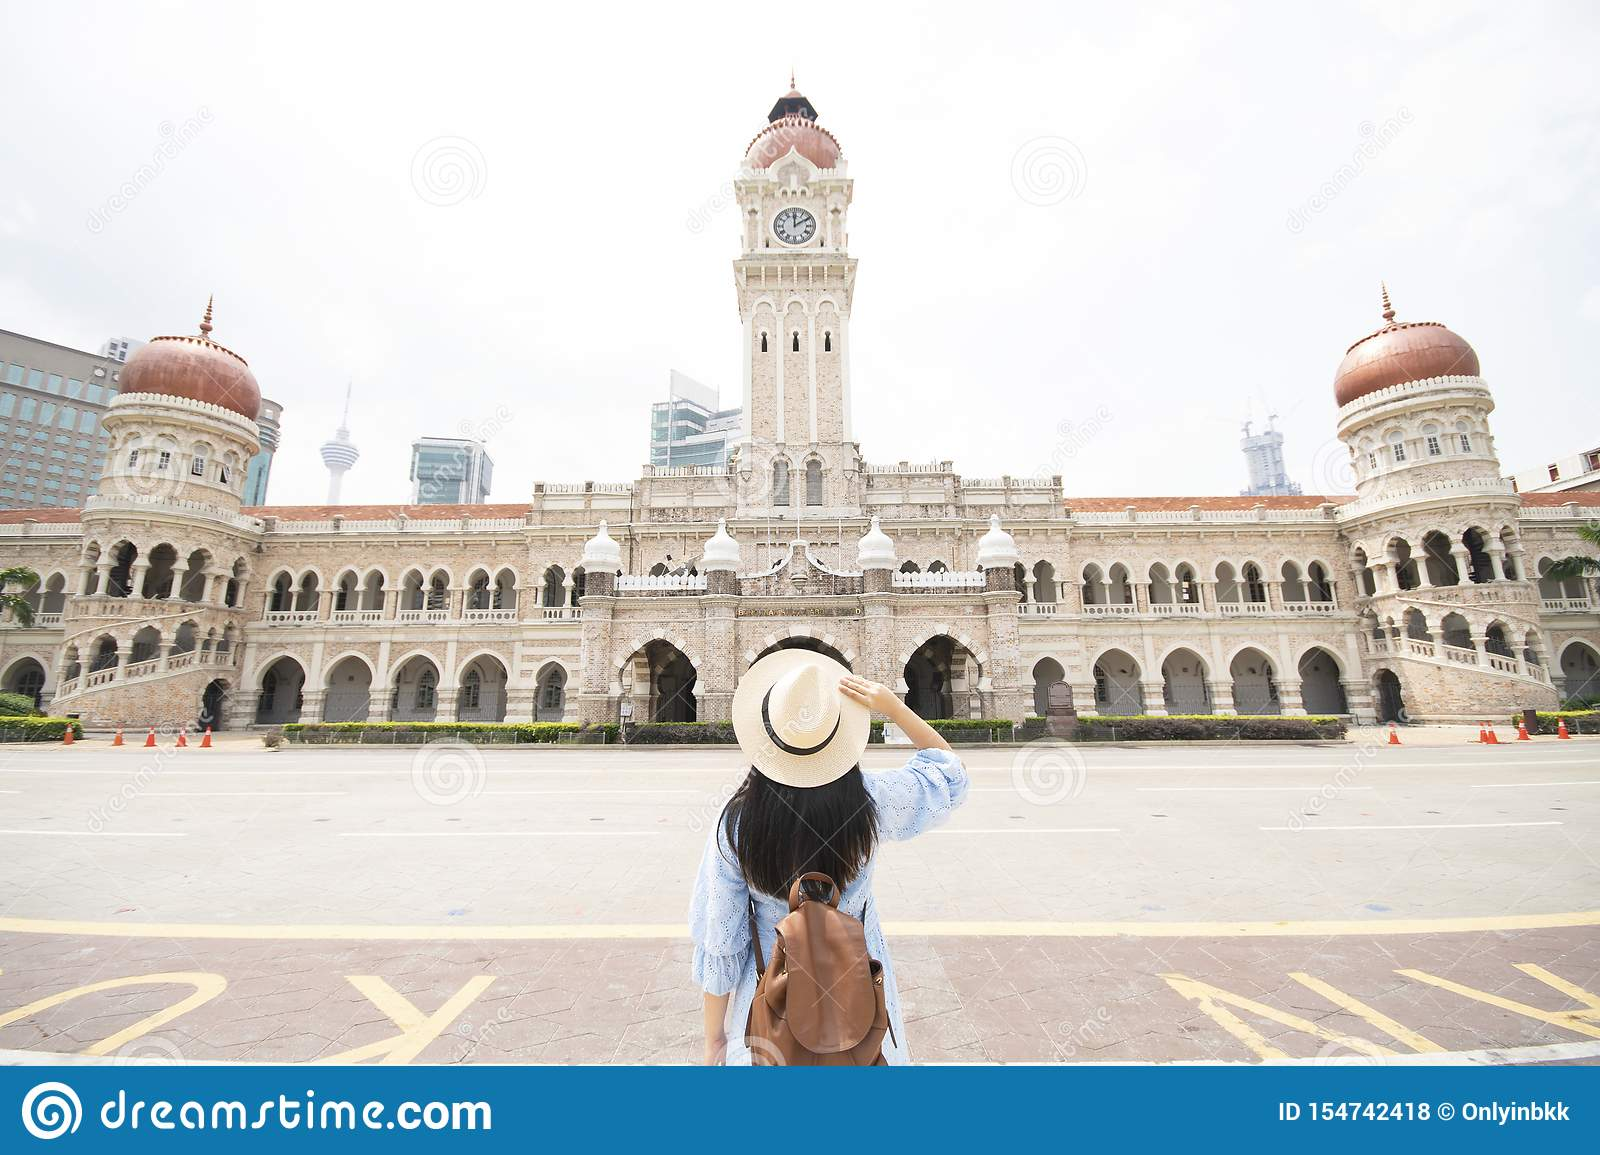 Tourist is sightseeing at The Sultan Abdul Samad building is located in front of the Merdeka Square in Jalan Raja,Kuala Lumpur